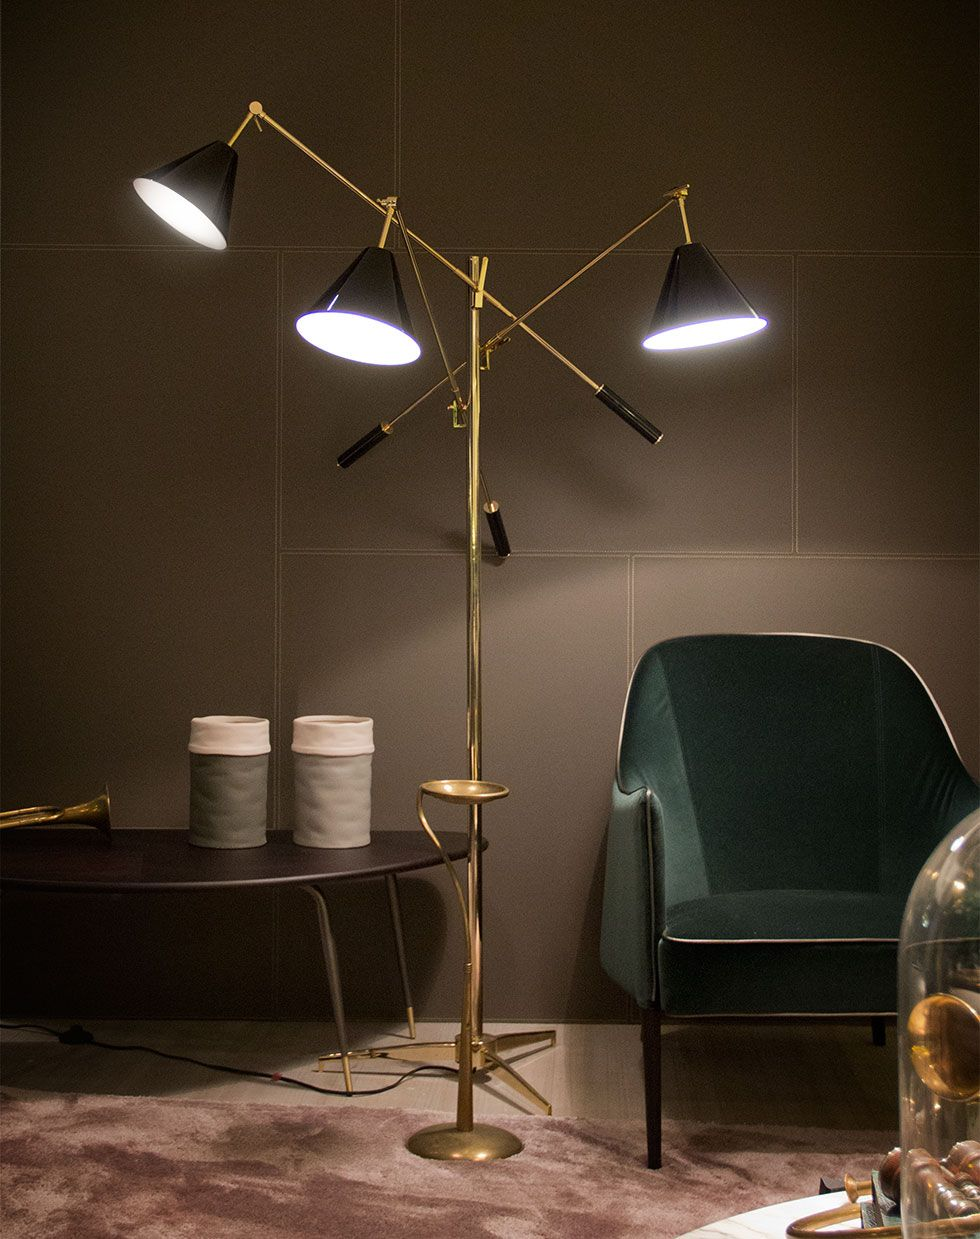 maison et objet maison et objet Maison et Objet 2019 Gives You The Best Modern Floor Lamps! 1ef197c6179a3b2c669e54935df4a738